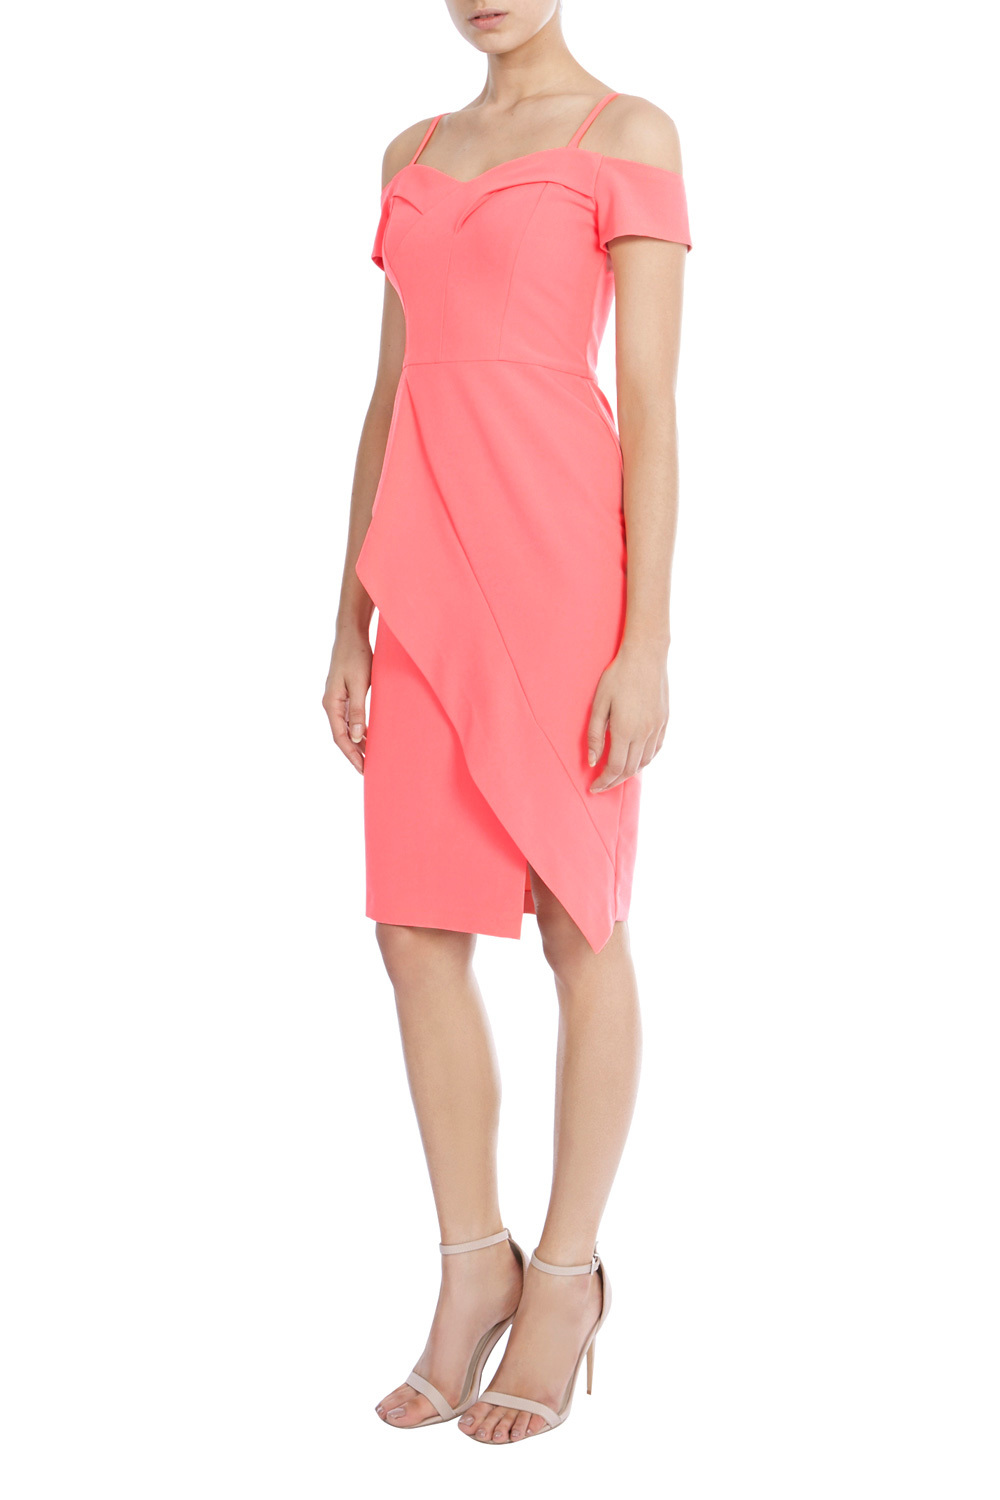 Briody Bardot Shift Dress D - style: shift; neckline: off the shoulder; fit: tailored/fitted; pattern: plain; predominant colour: coral; occasions: evening, occasion; length: on the knee; fibres: polyester/polyamide - 100%; hip detail: slits at hip; sleeve length: short sleeve; sleeve style: standard; texture group: crepes; pattern type: fabric; season: s/s 2016; wardrobe: event